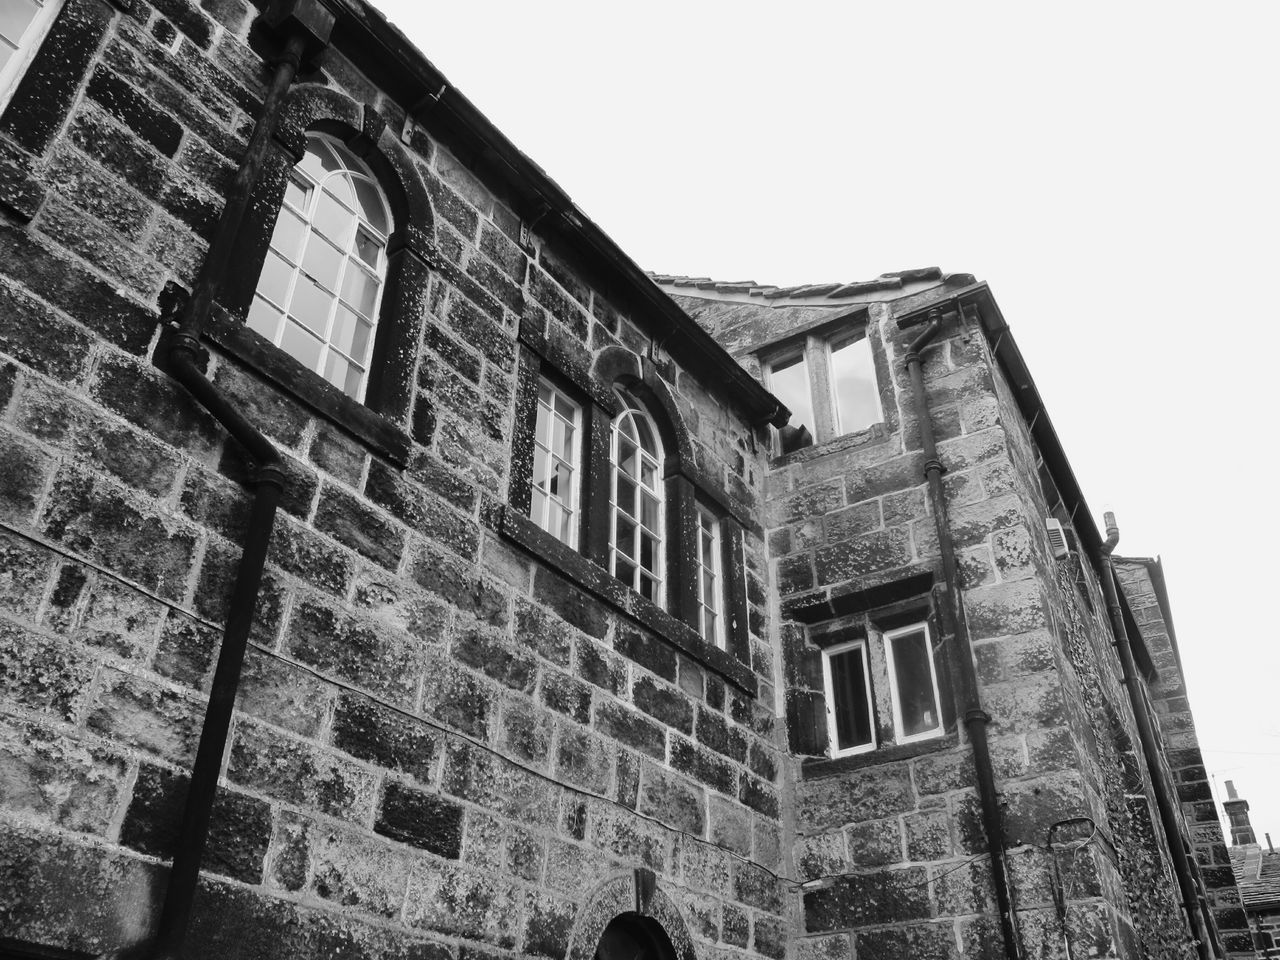 Old School House England Old Architecture Houses Village Quaint  Landscape Hebden Bridge Heptonstall Museum EyeEm Best Shots Light And Shadow Windows Learn & Shoot: Balancing Elements Black & White Buildings Monochrome Black And White Heptonstall Pathway Taking Photos Pattern Pieces Bricks Stone Stone Wall Walls